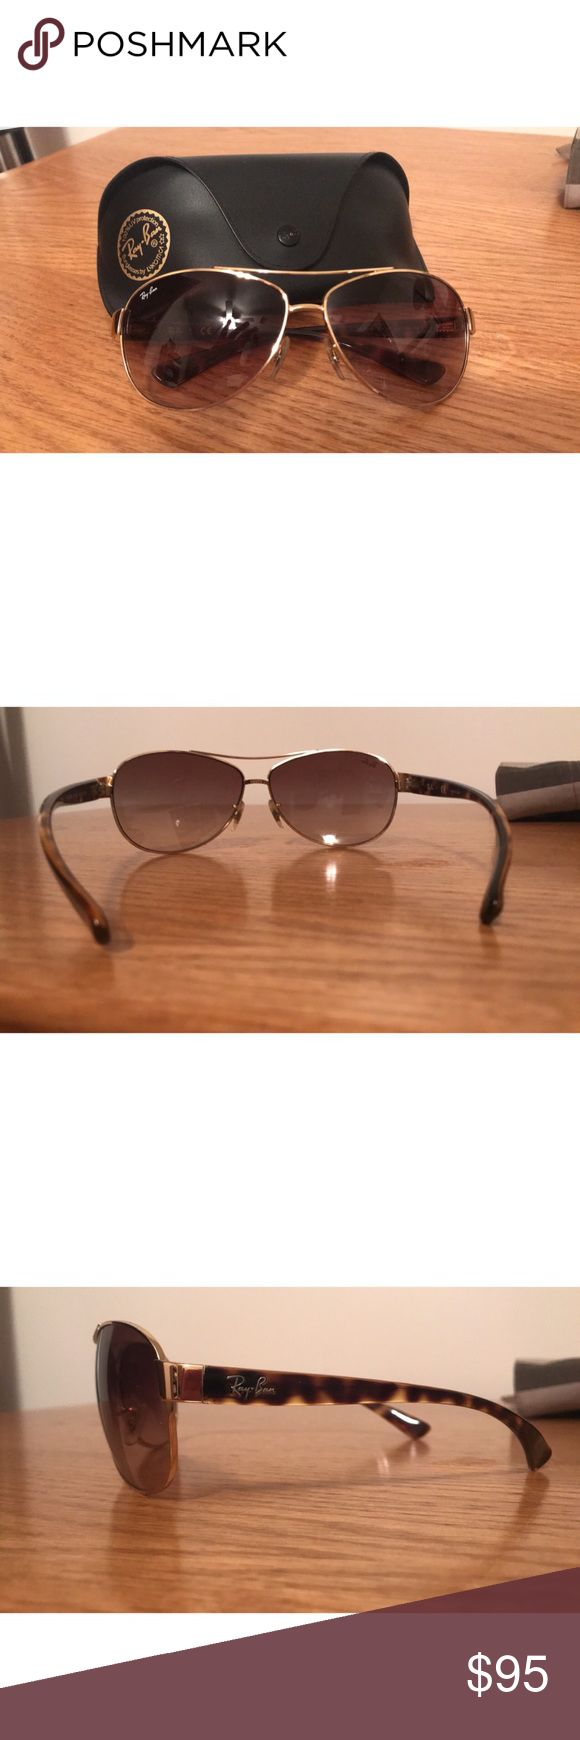 Ran-Ban gold and tortoise women's sunglasses Brand new condition Ray-Ban Accessories Sunglasses